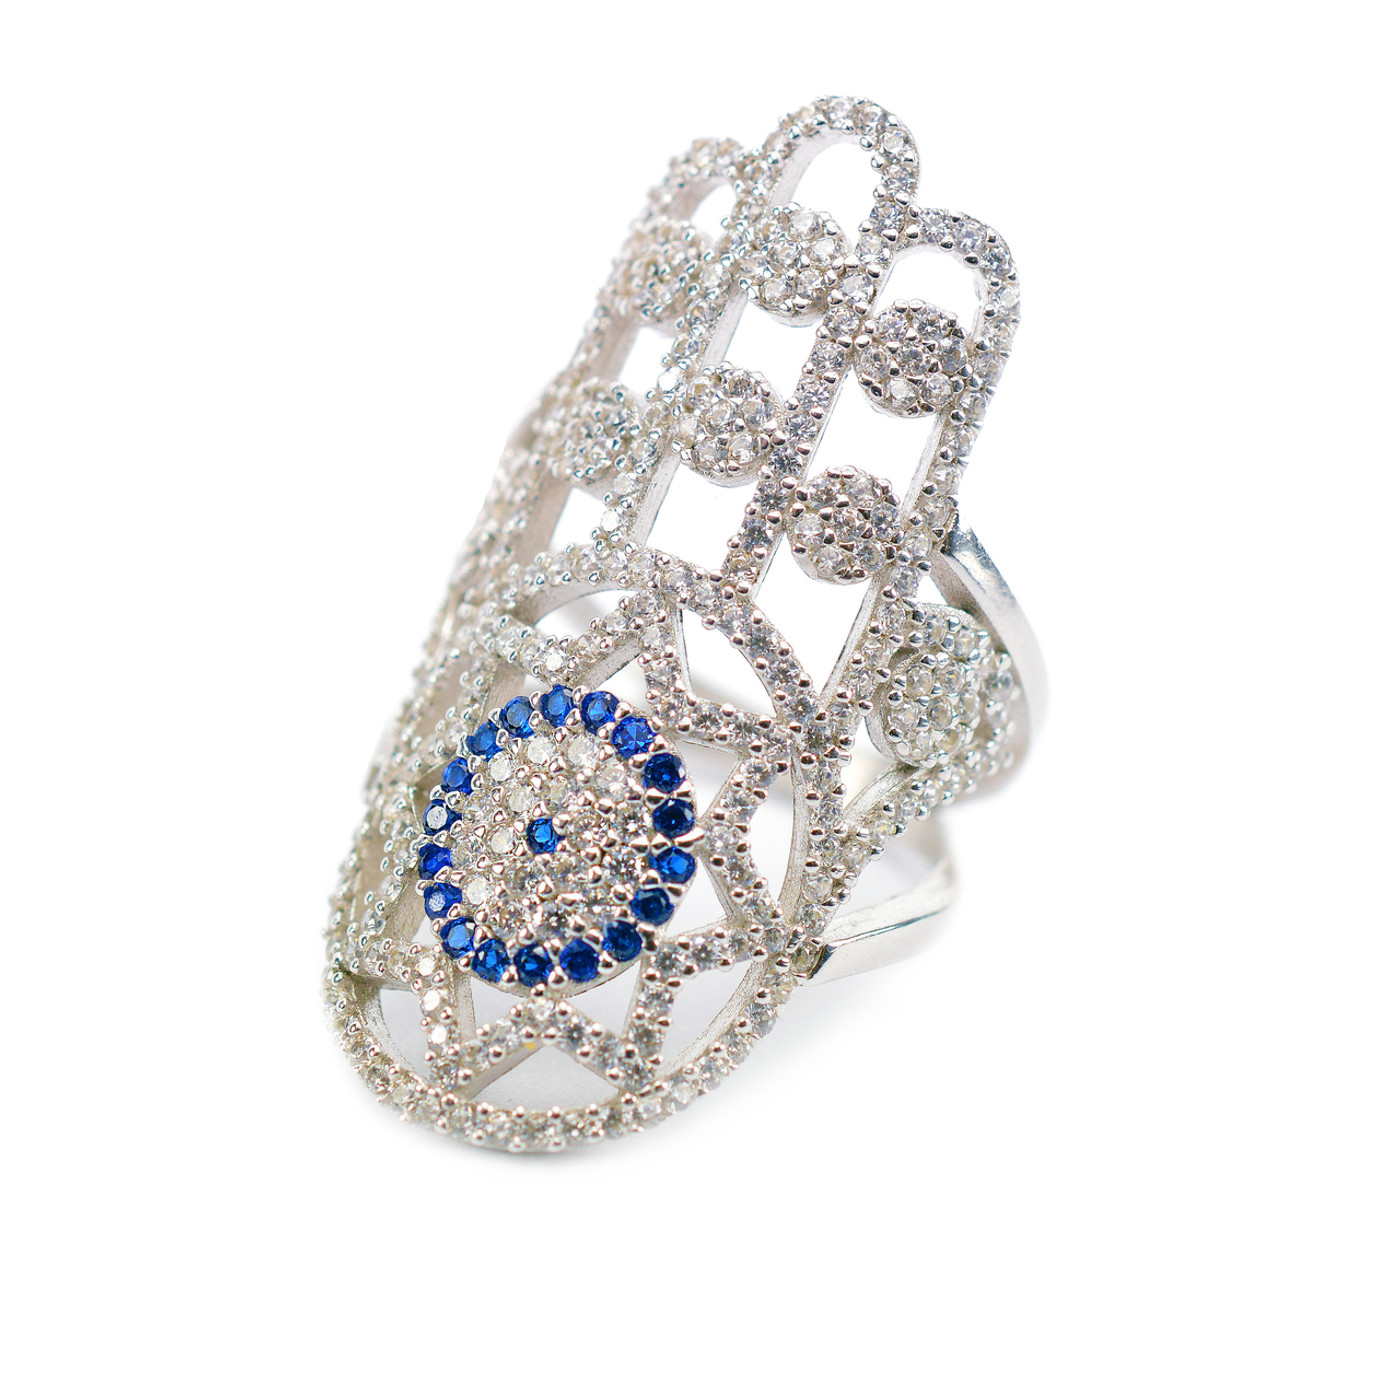 The Hamsa Evil Eye Ring